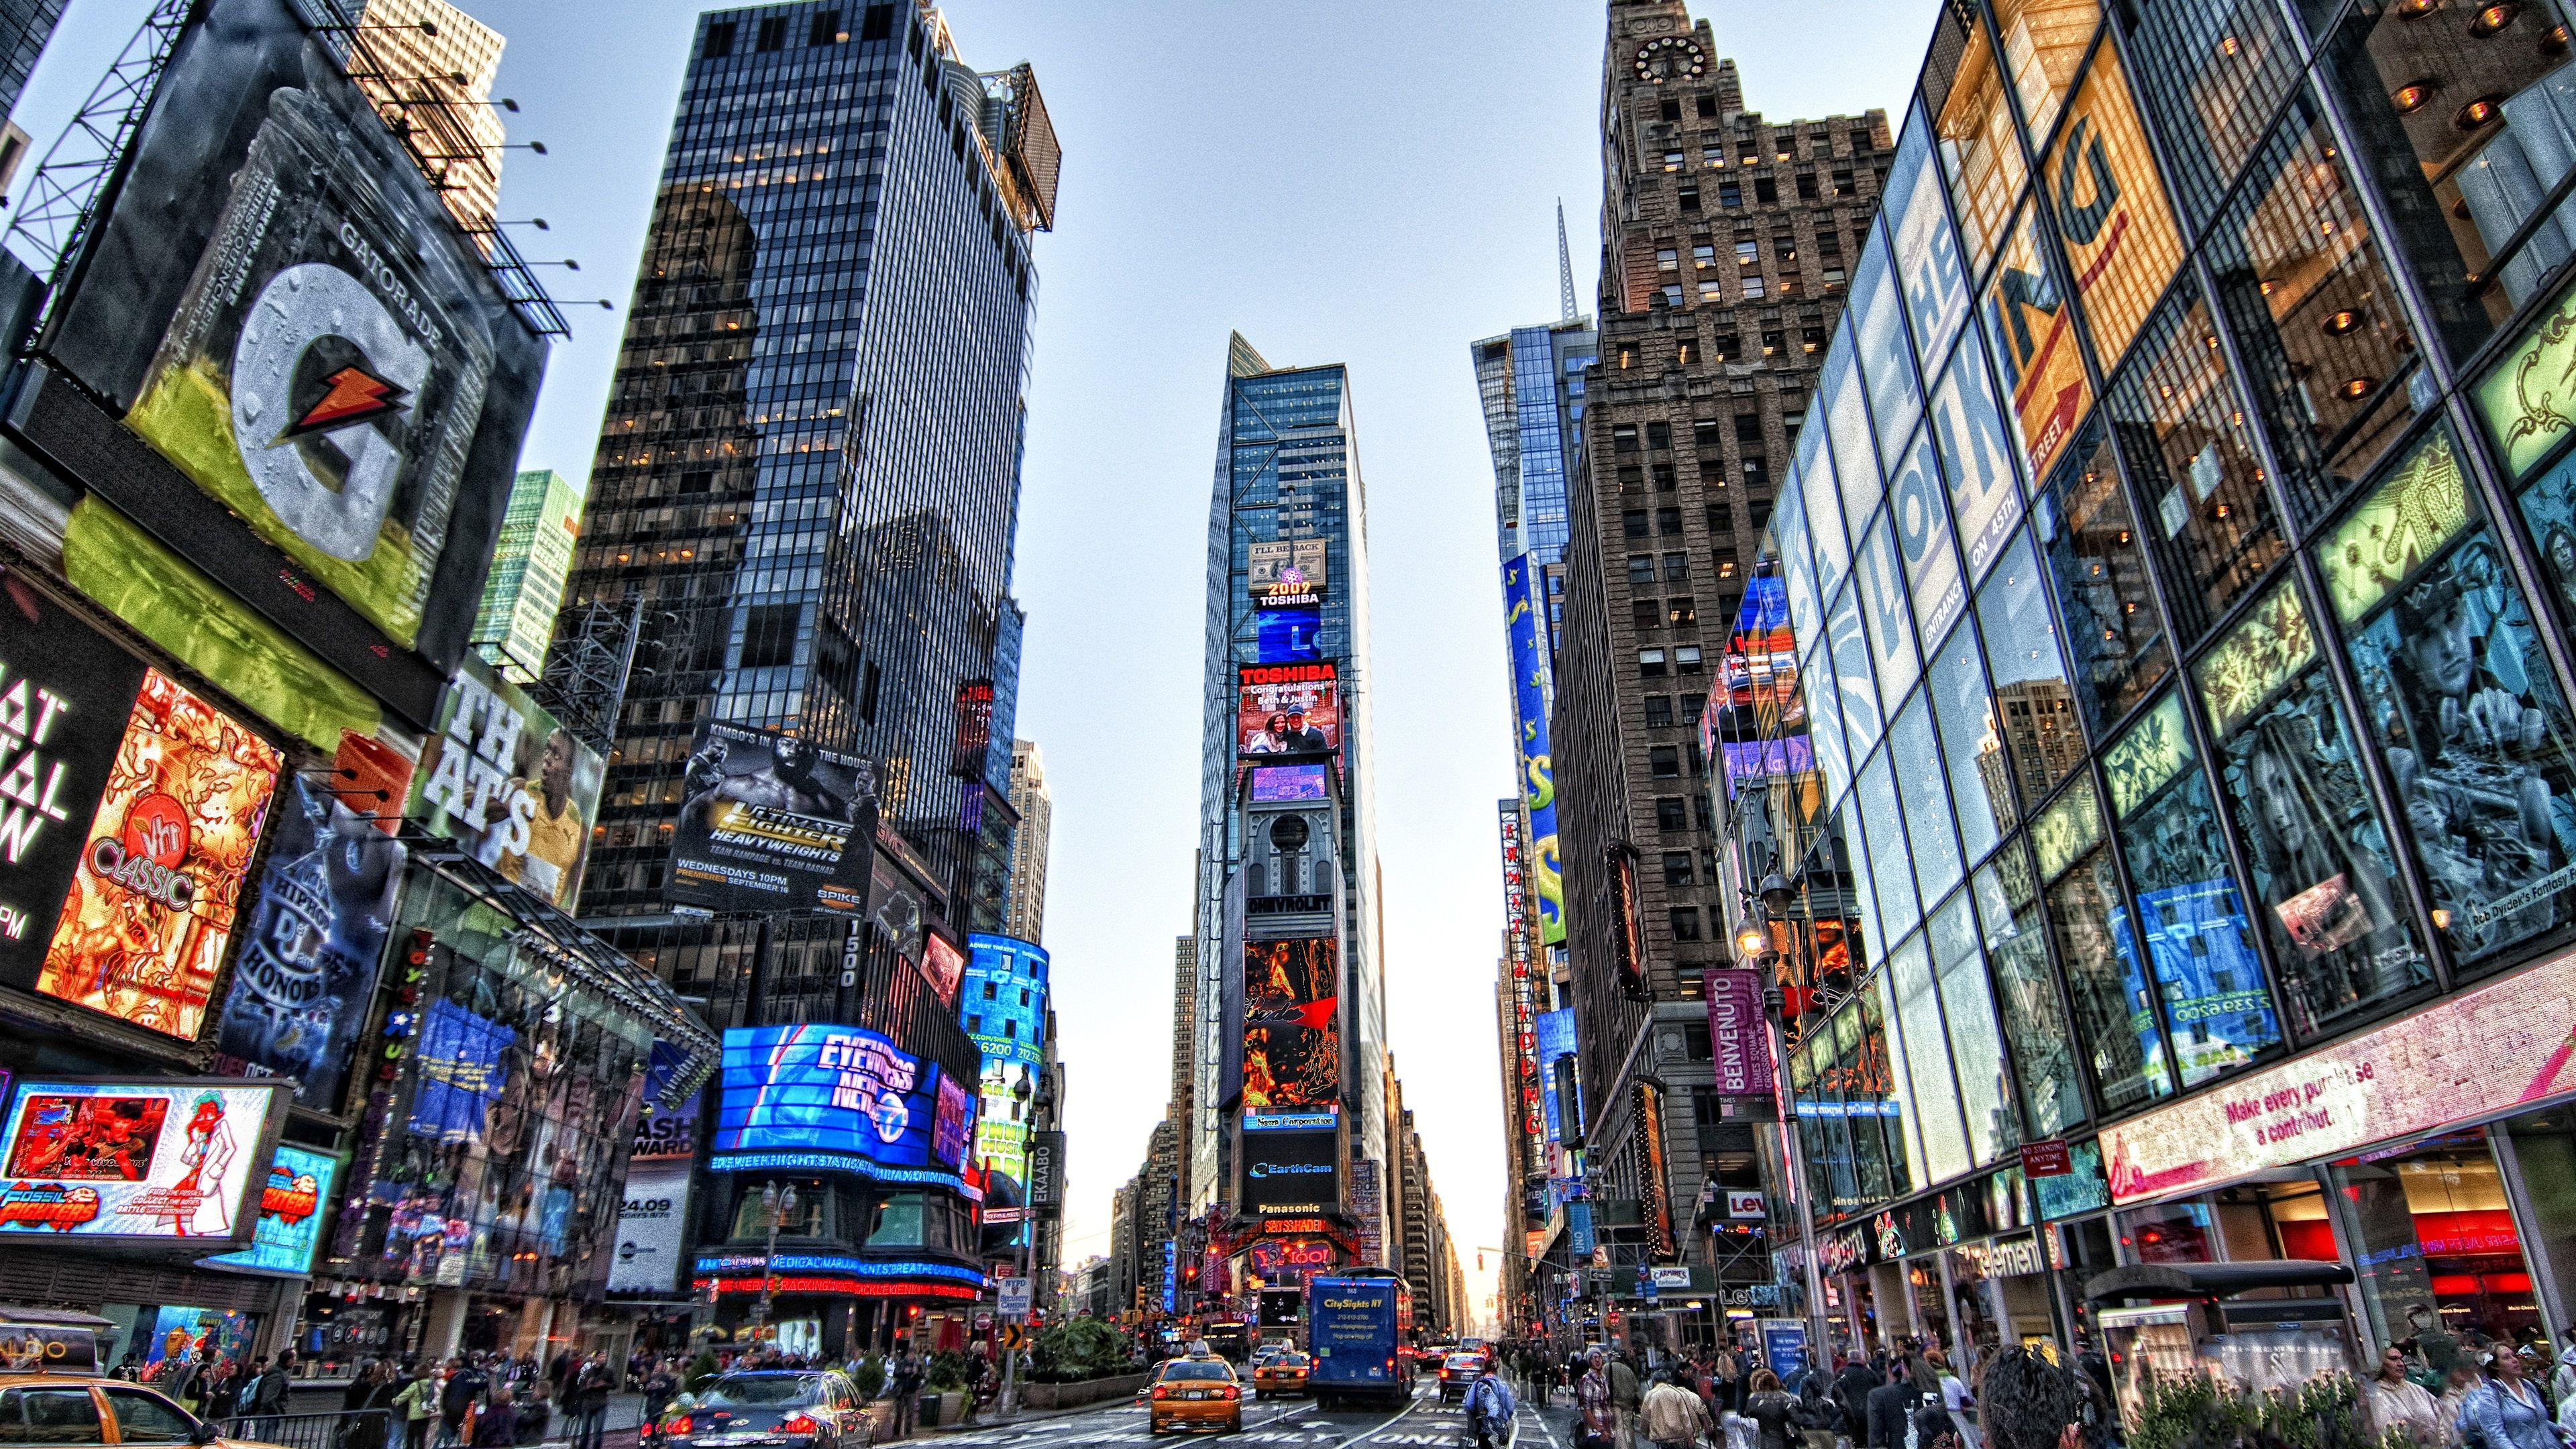 Times Square 4K Wallpapers - Top Free Times Square 4K ...